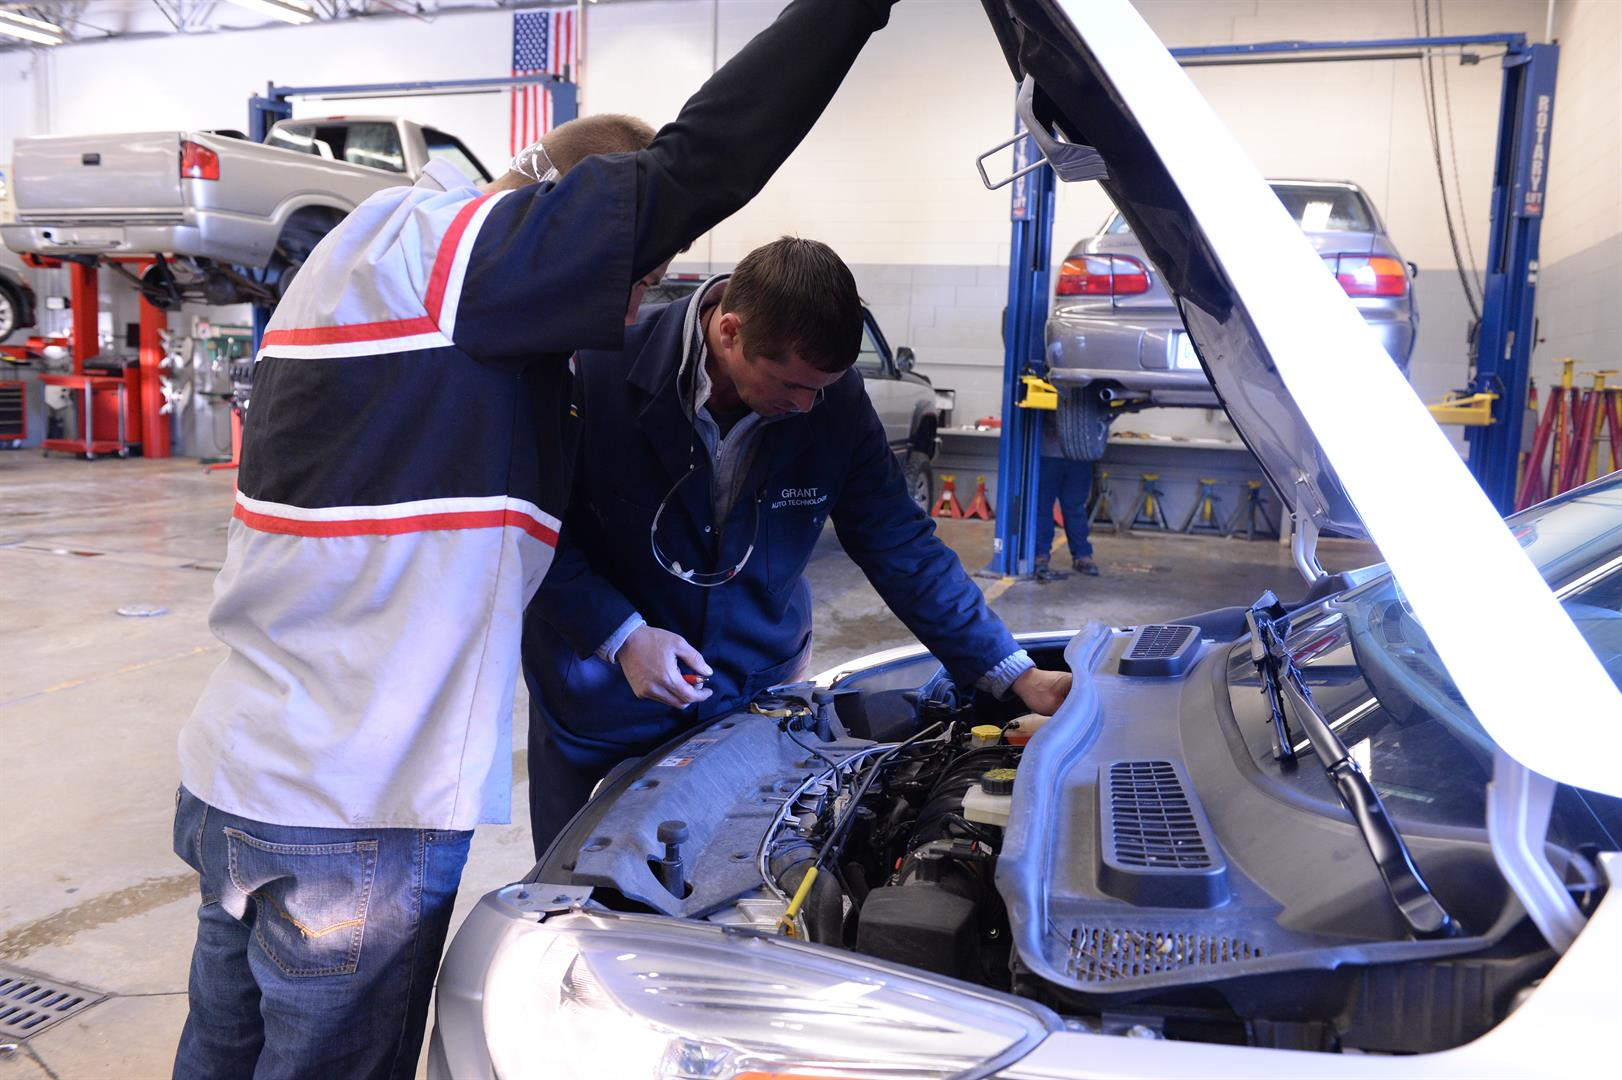 The Auto Technology instructor demonstrates to a student an engine task.